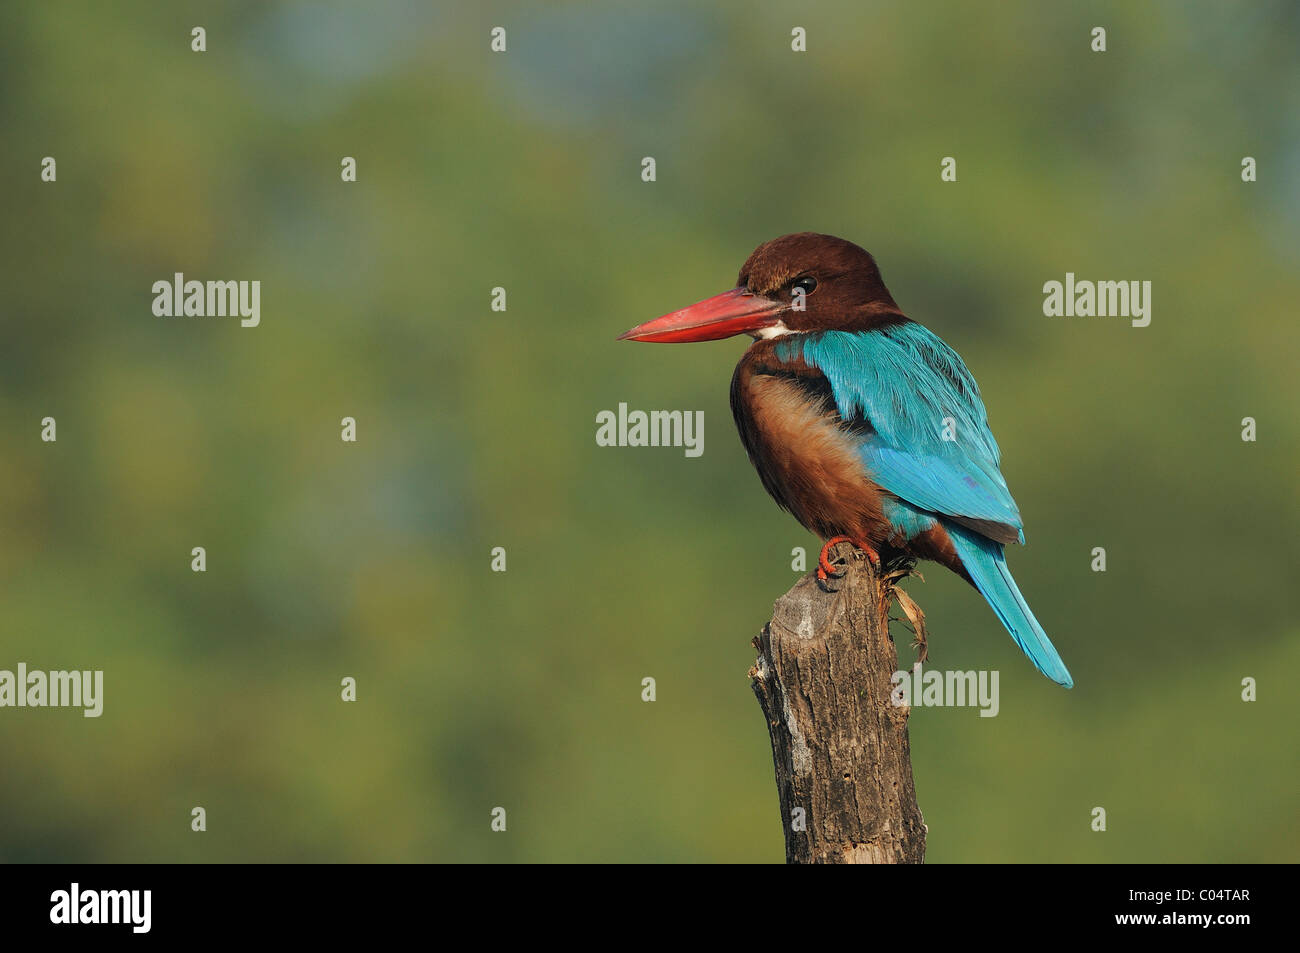 A white-throated kingfisher on a tree stump in Keoladeo Ghana National Park, Bharatpur, India - Stock Image